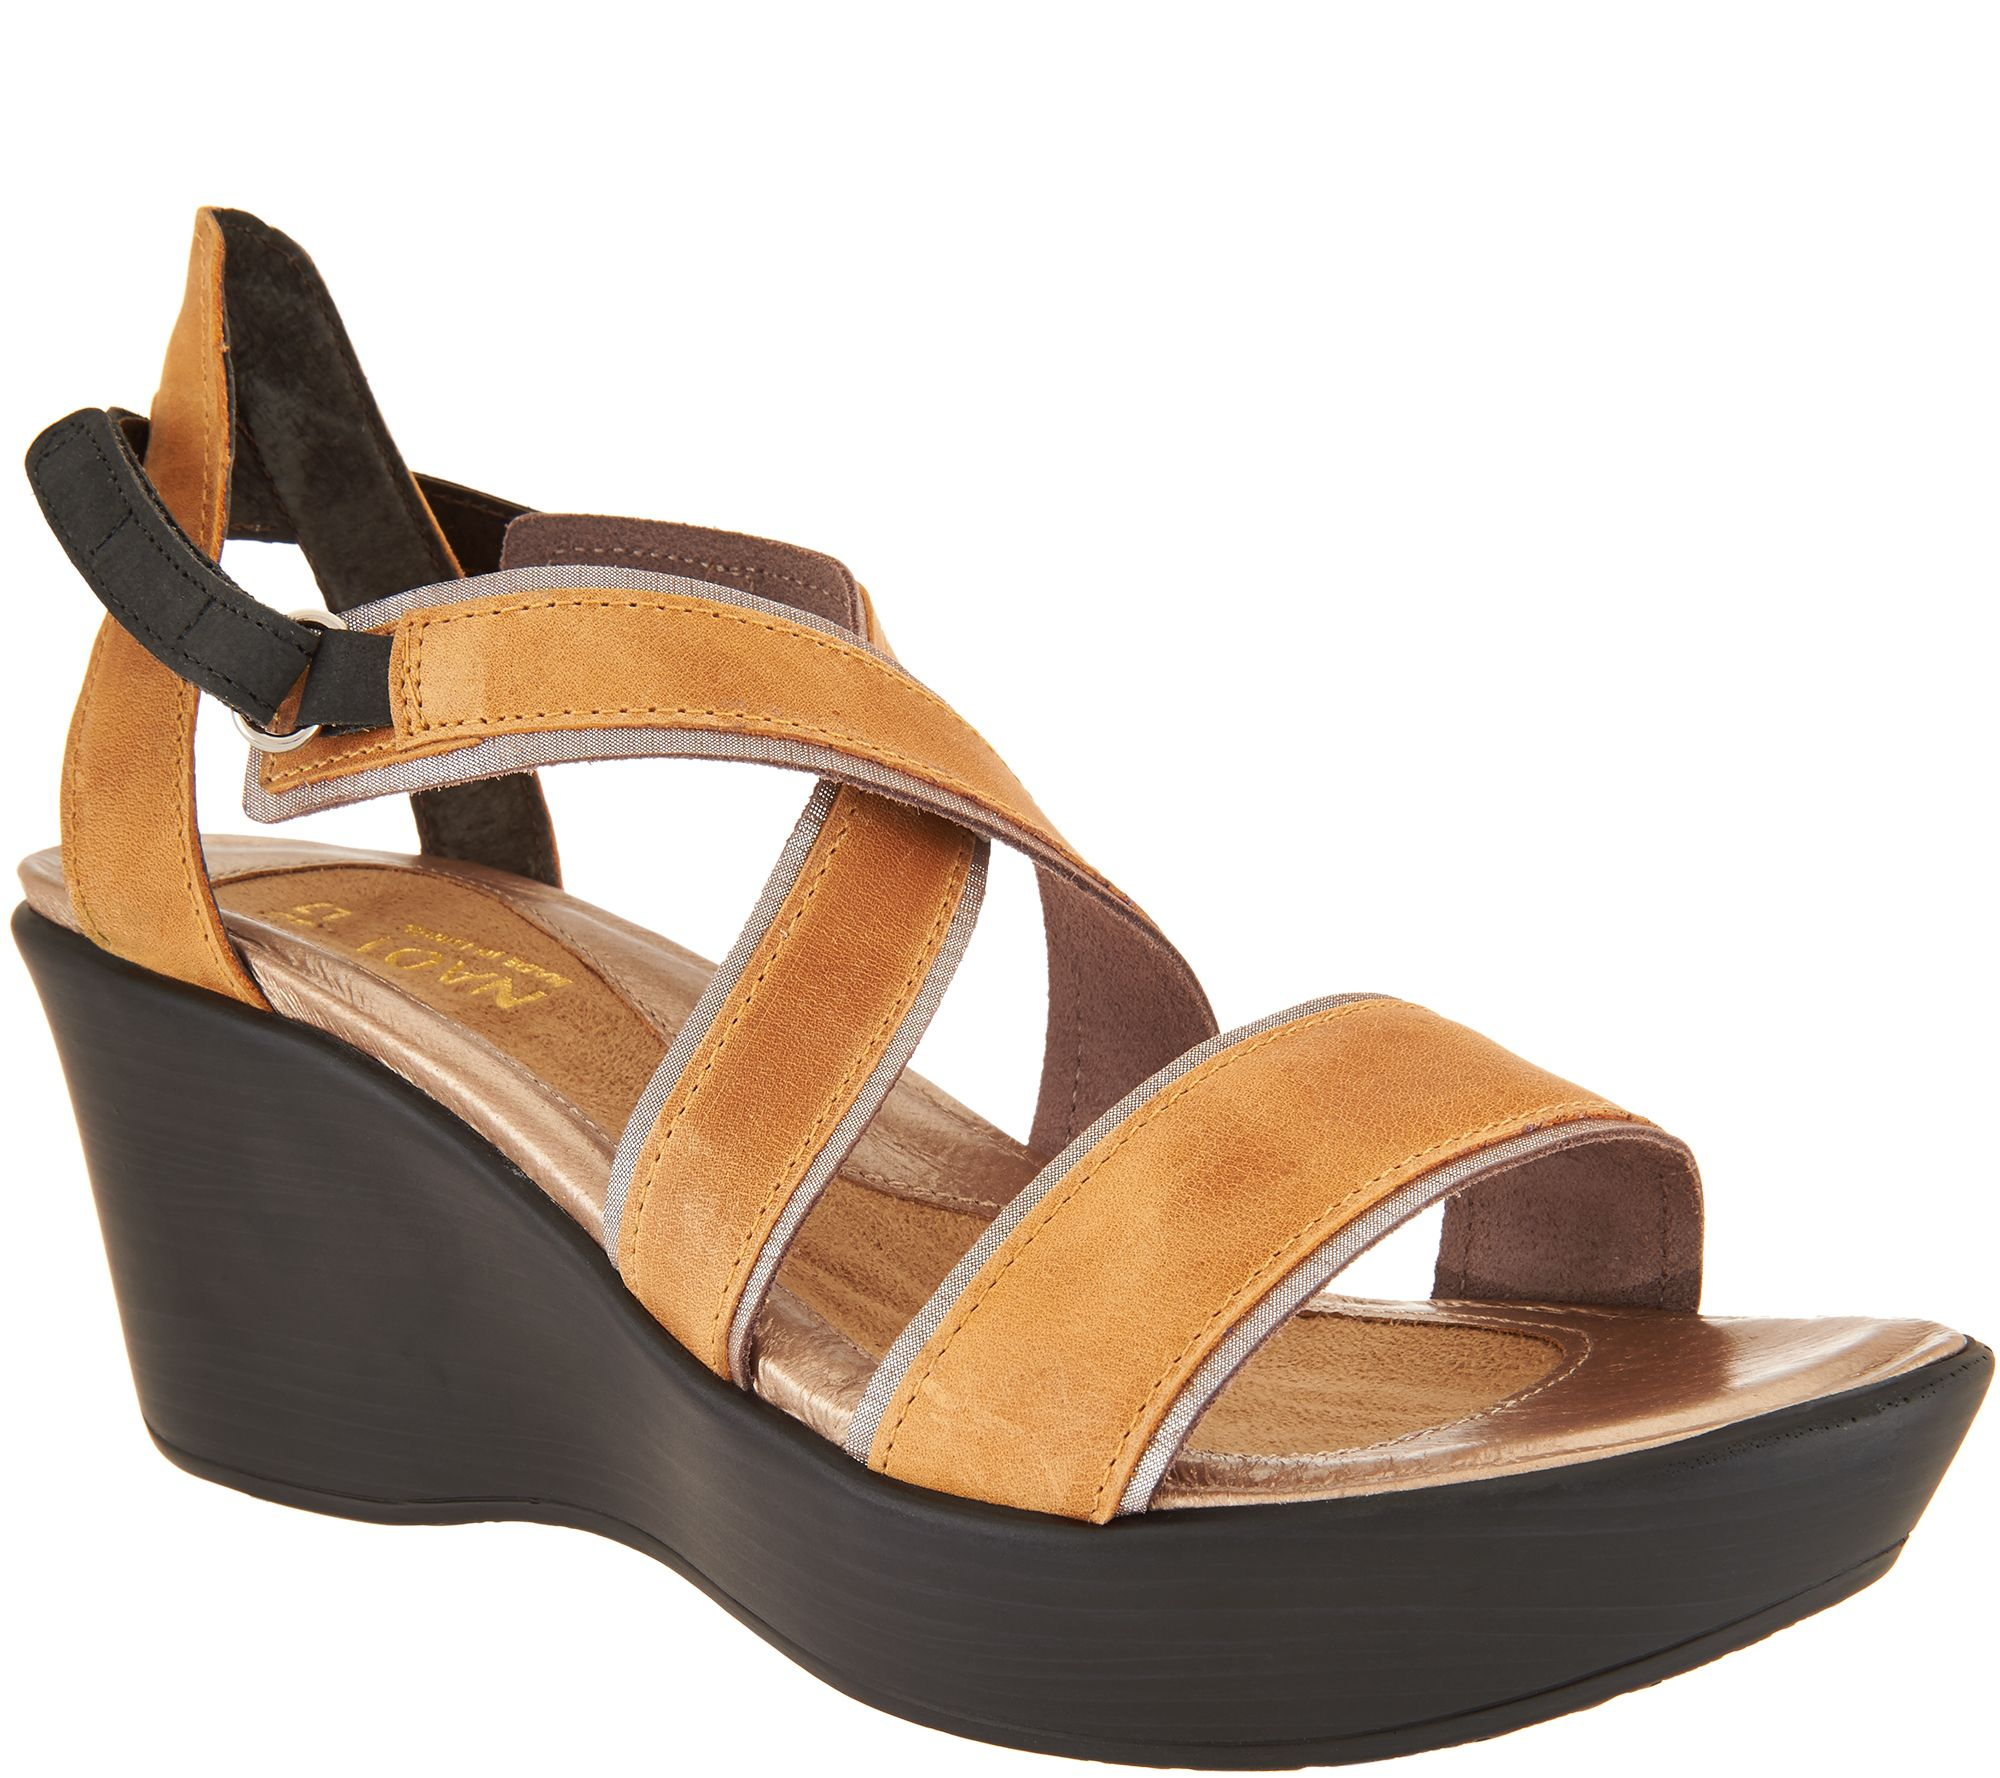 8fb3a7f0d88d Naot Leather Wedge Sandals - Gesture - Page 1 — QVC.com